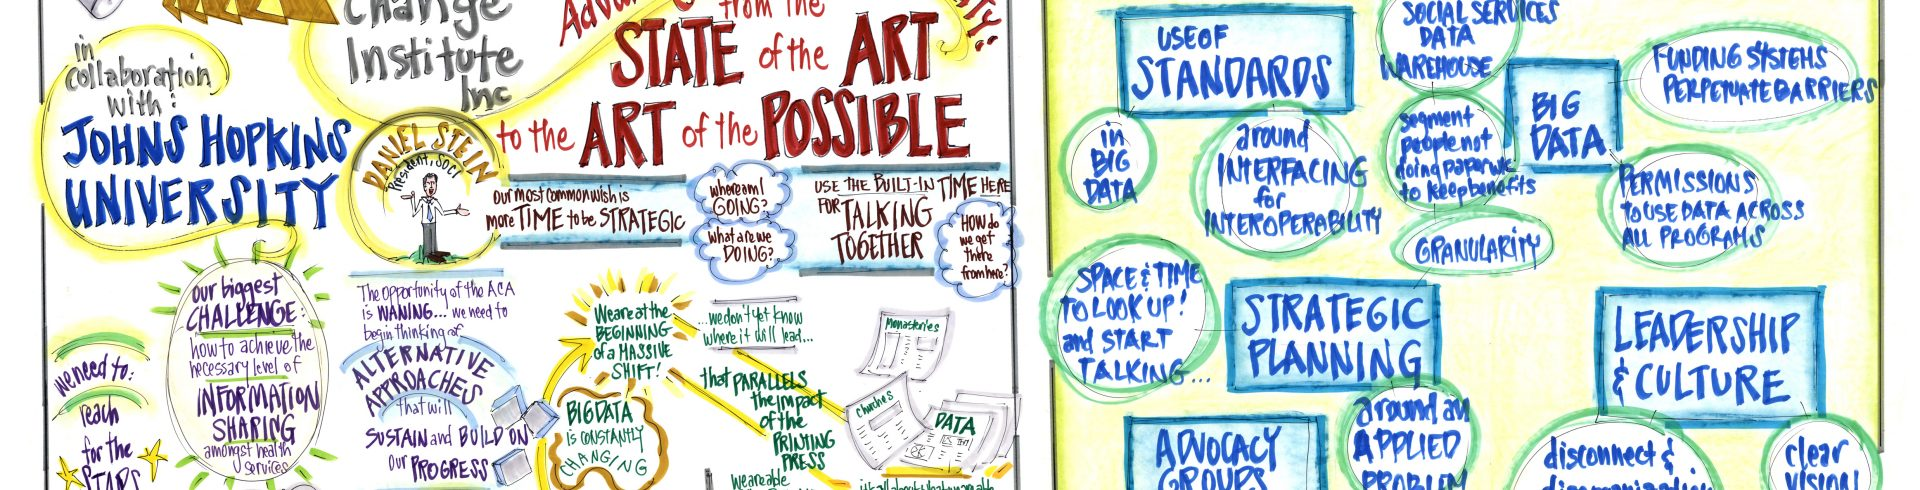 "SOCI2014 – Welcome and Questions of Consequence: The ""State of the Art"" and the ""Art of the Possible"""